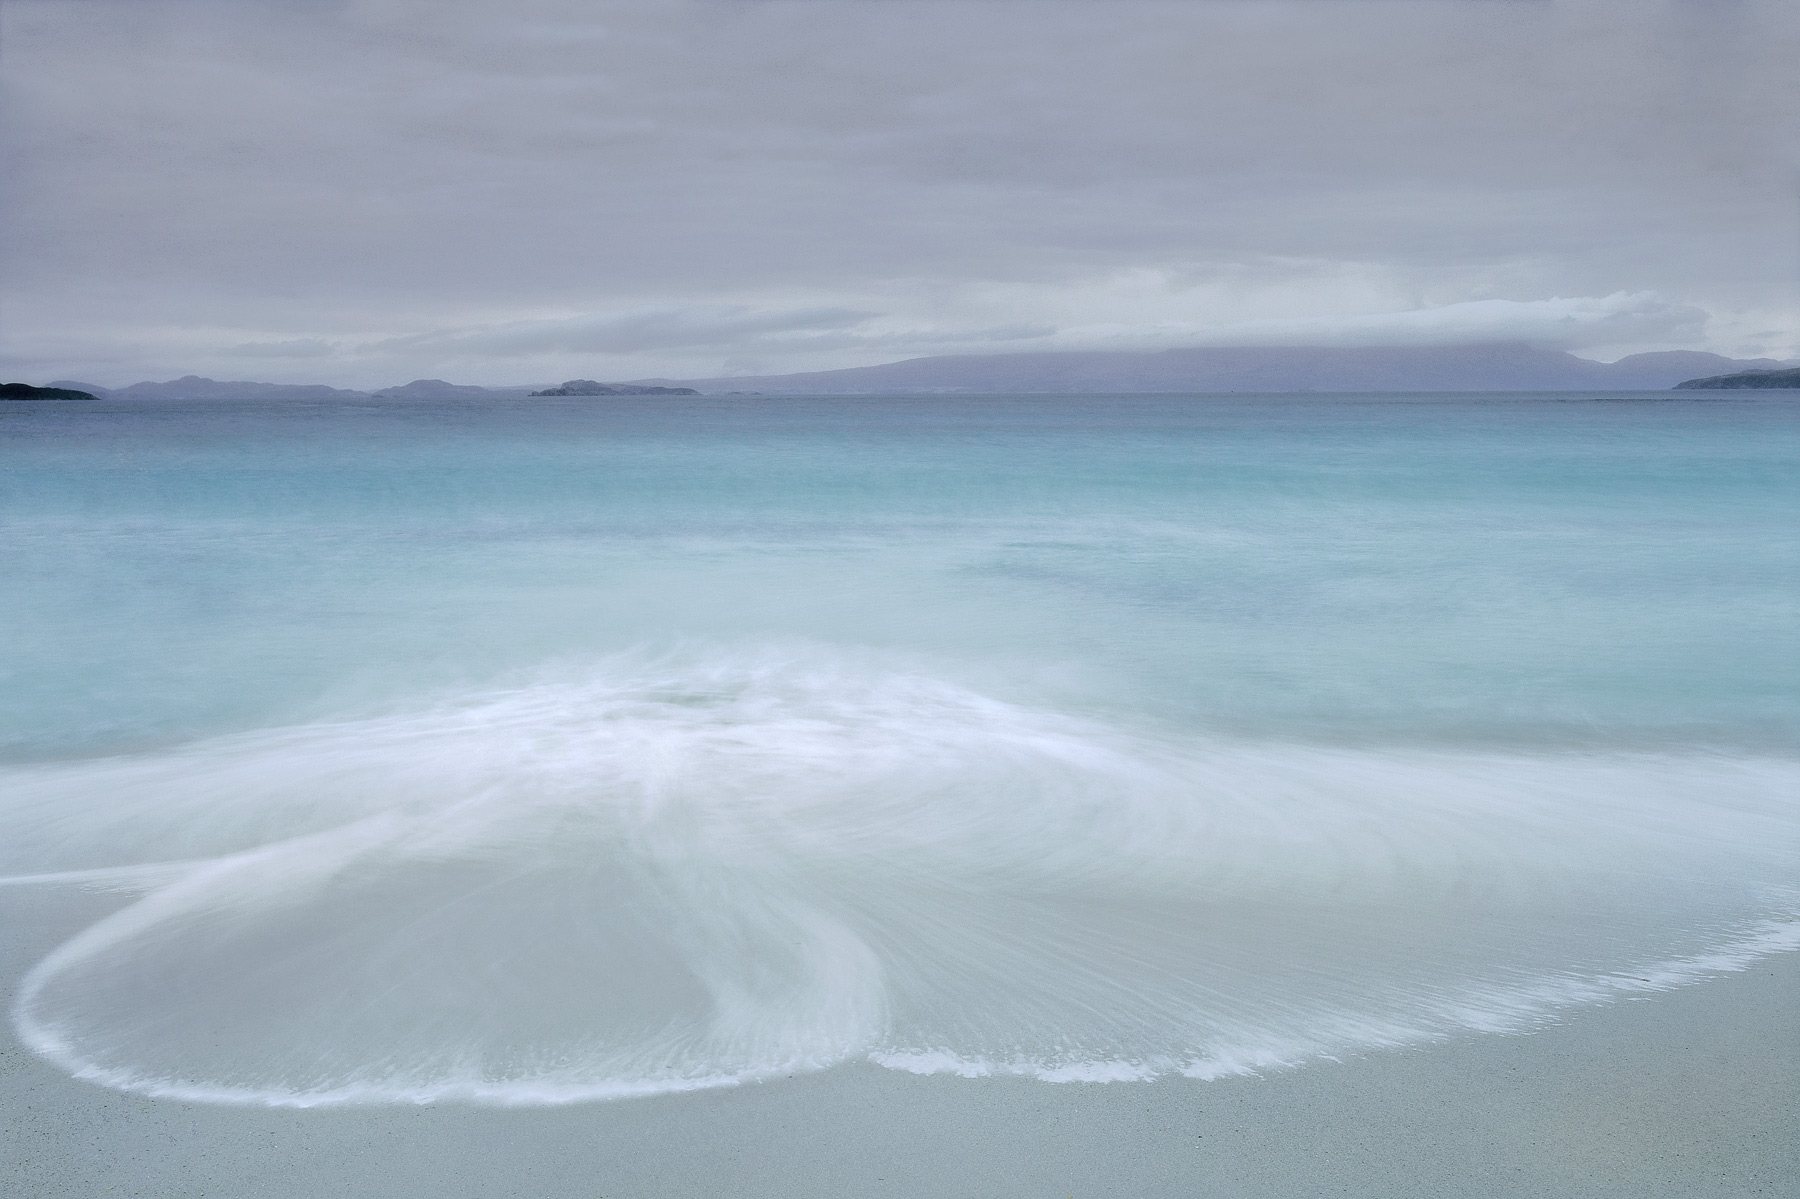 Hypnotised by the gently rolling waves from a turquoise sea at Mellon Udrigle I delighted in the ever changing ebb and flow patterns...